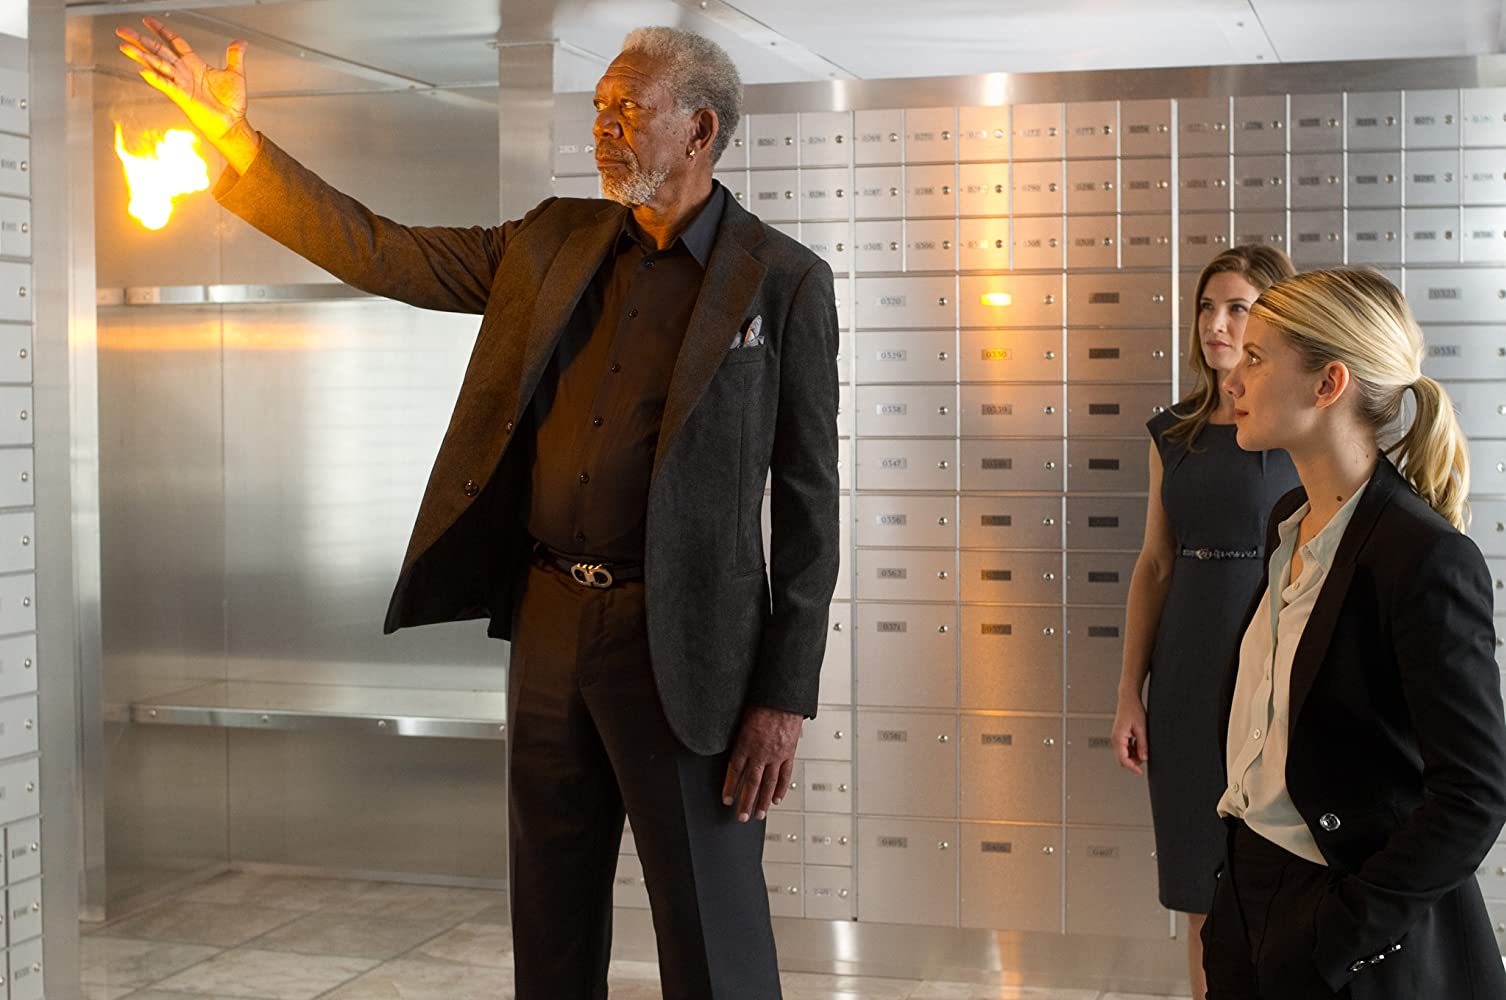 Morgan Freeman, Mélanie Laurent, and Jessica Lindsey in Now You See Me (2013)